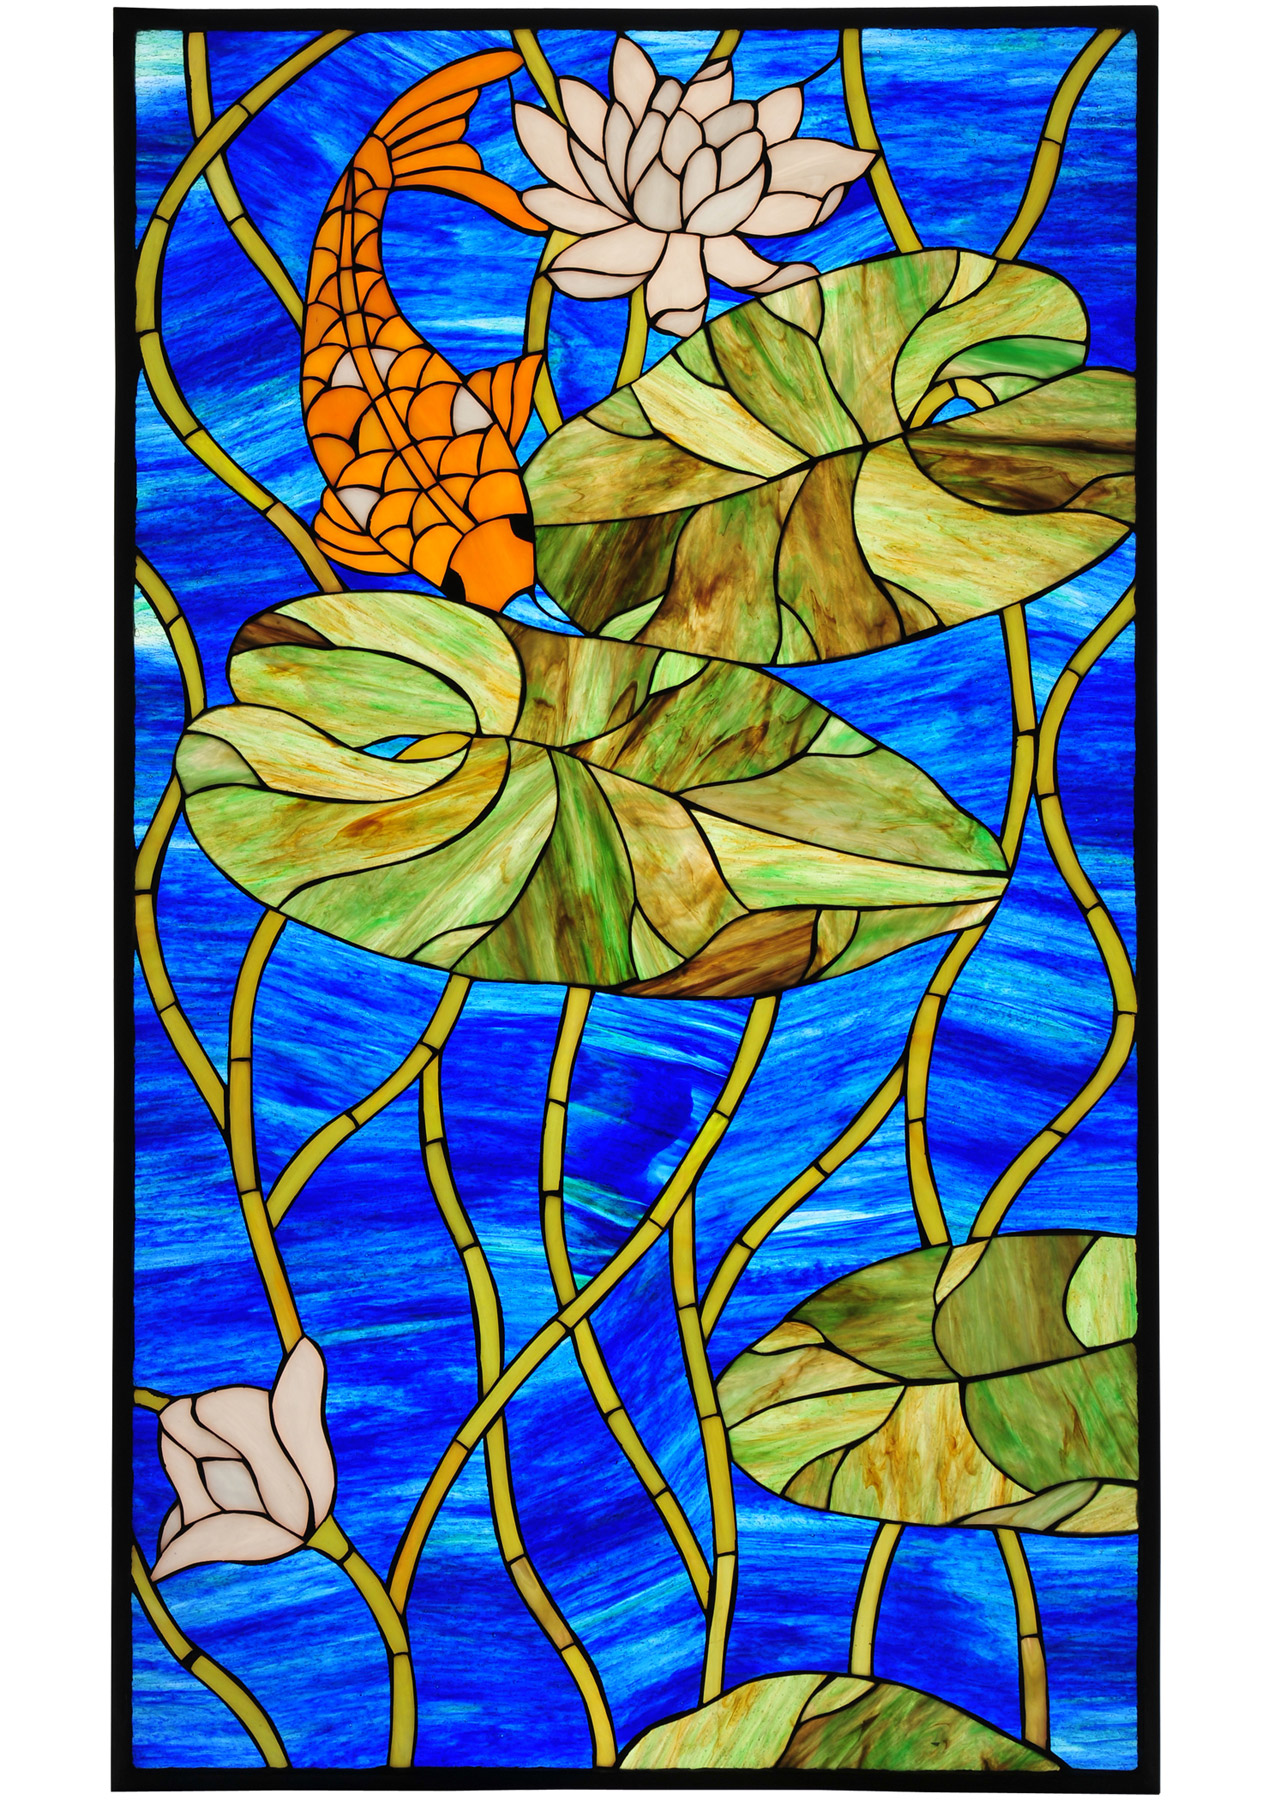 Meyda 67793 Tiffany Koi Pond Lily Stained Glass Window